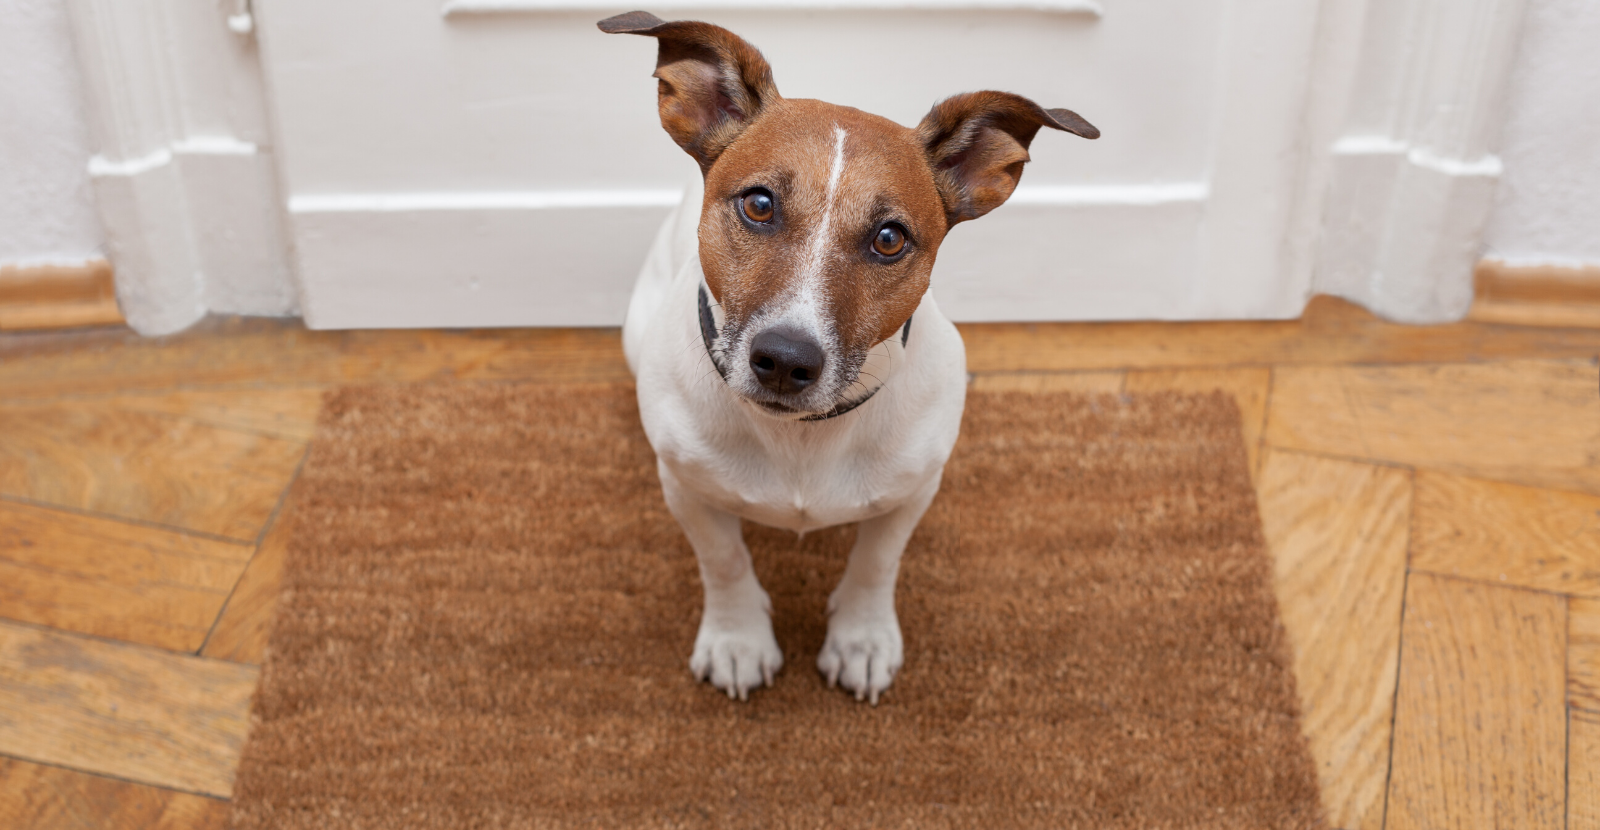 5 Tips on Staging Your Home So Buyers Don't Know You Have a Dog